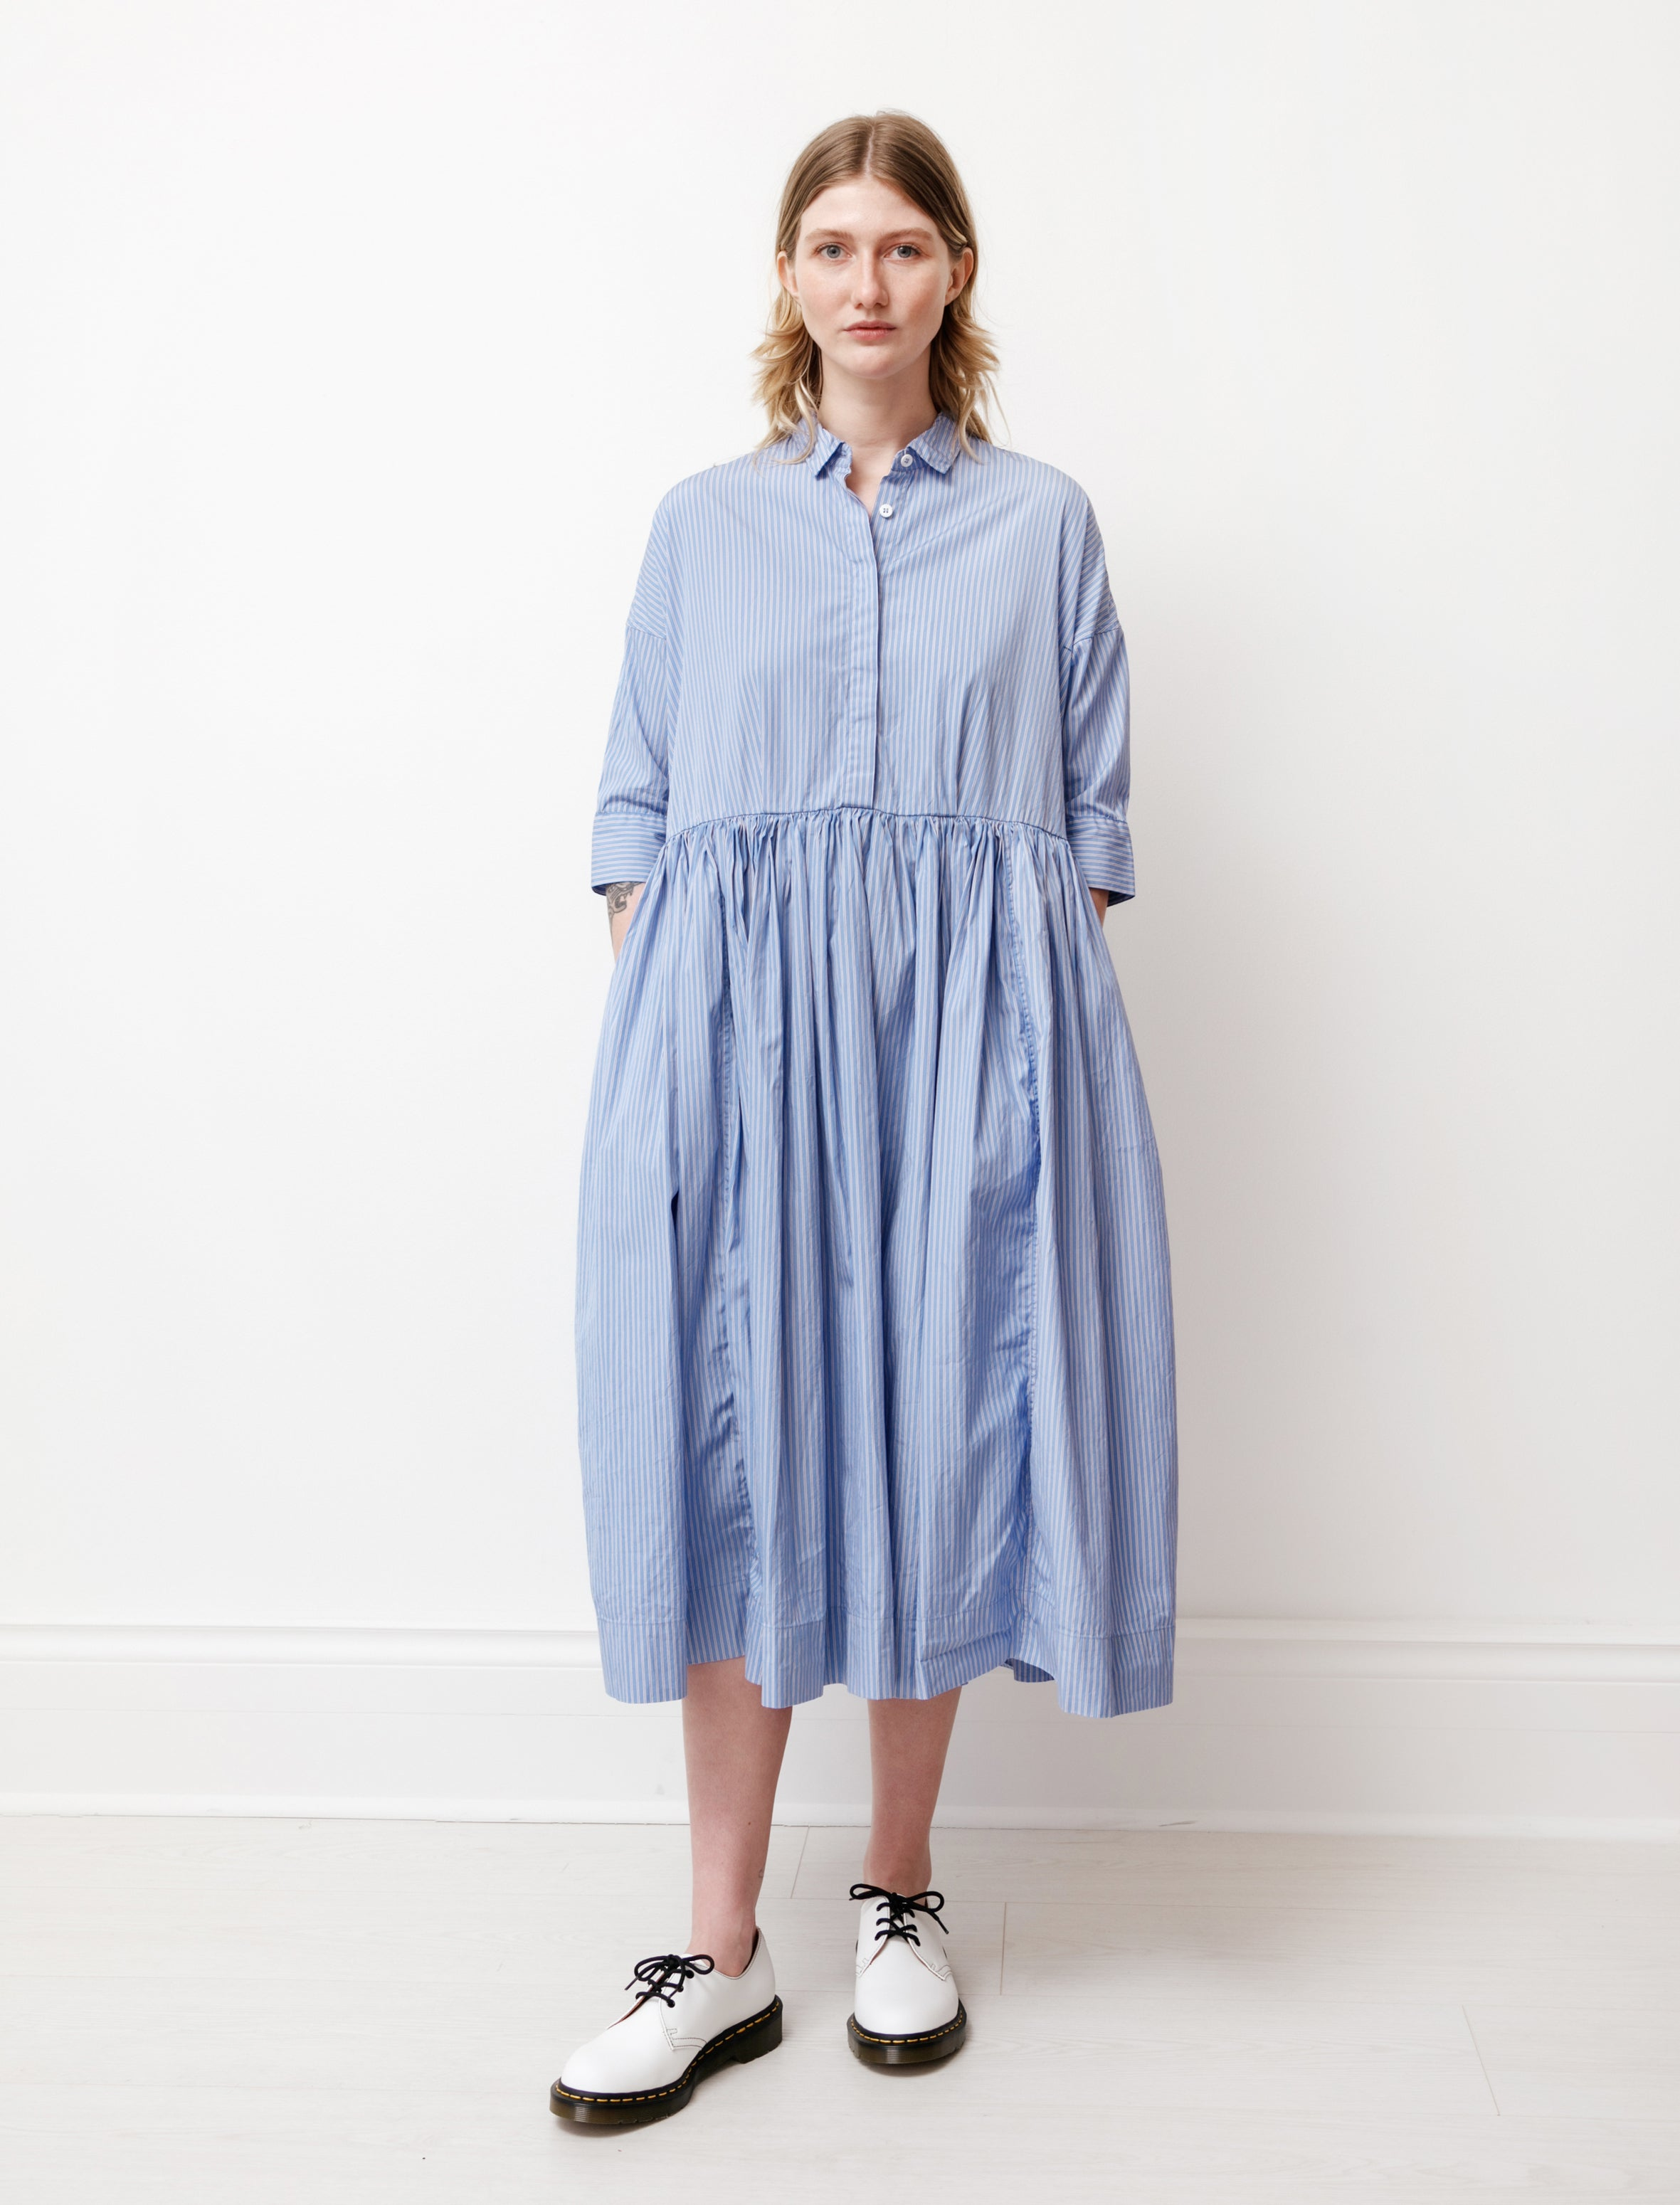 Casey Casey Stephanie Dress Blue Stripe